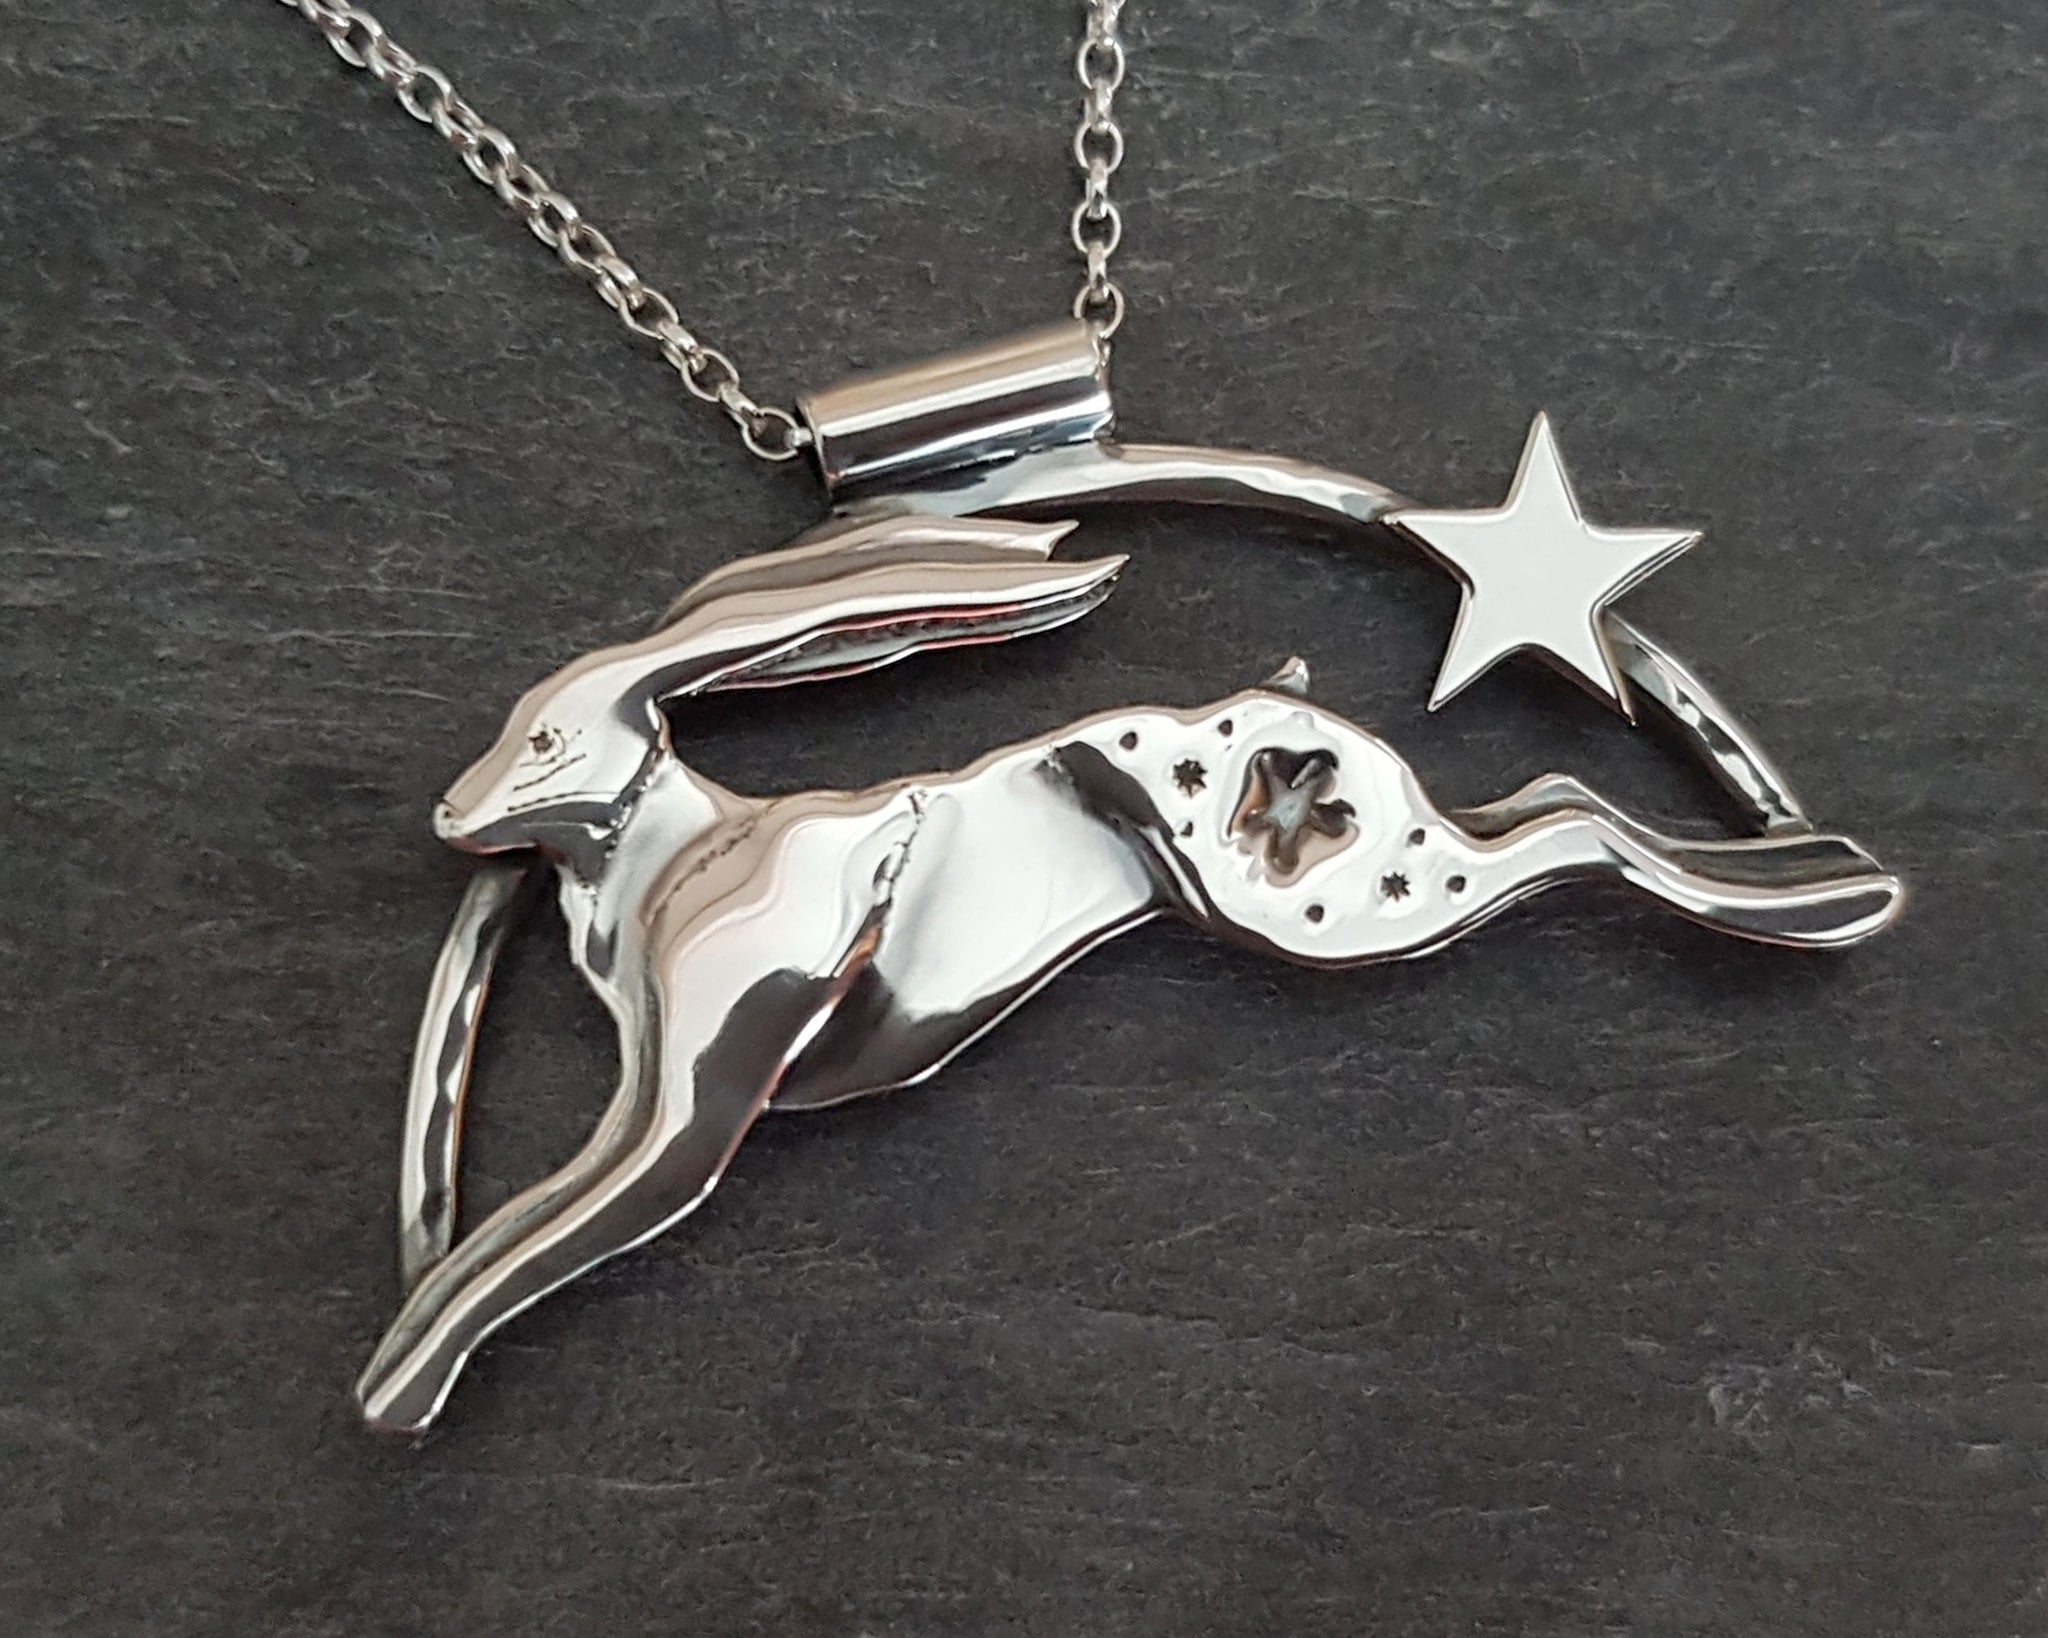 Stargazer Moonleaper Sterling Silver Hare Necklace